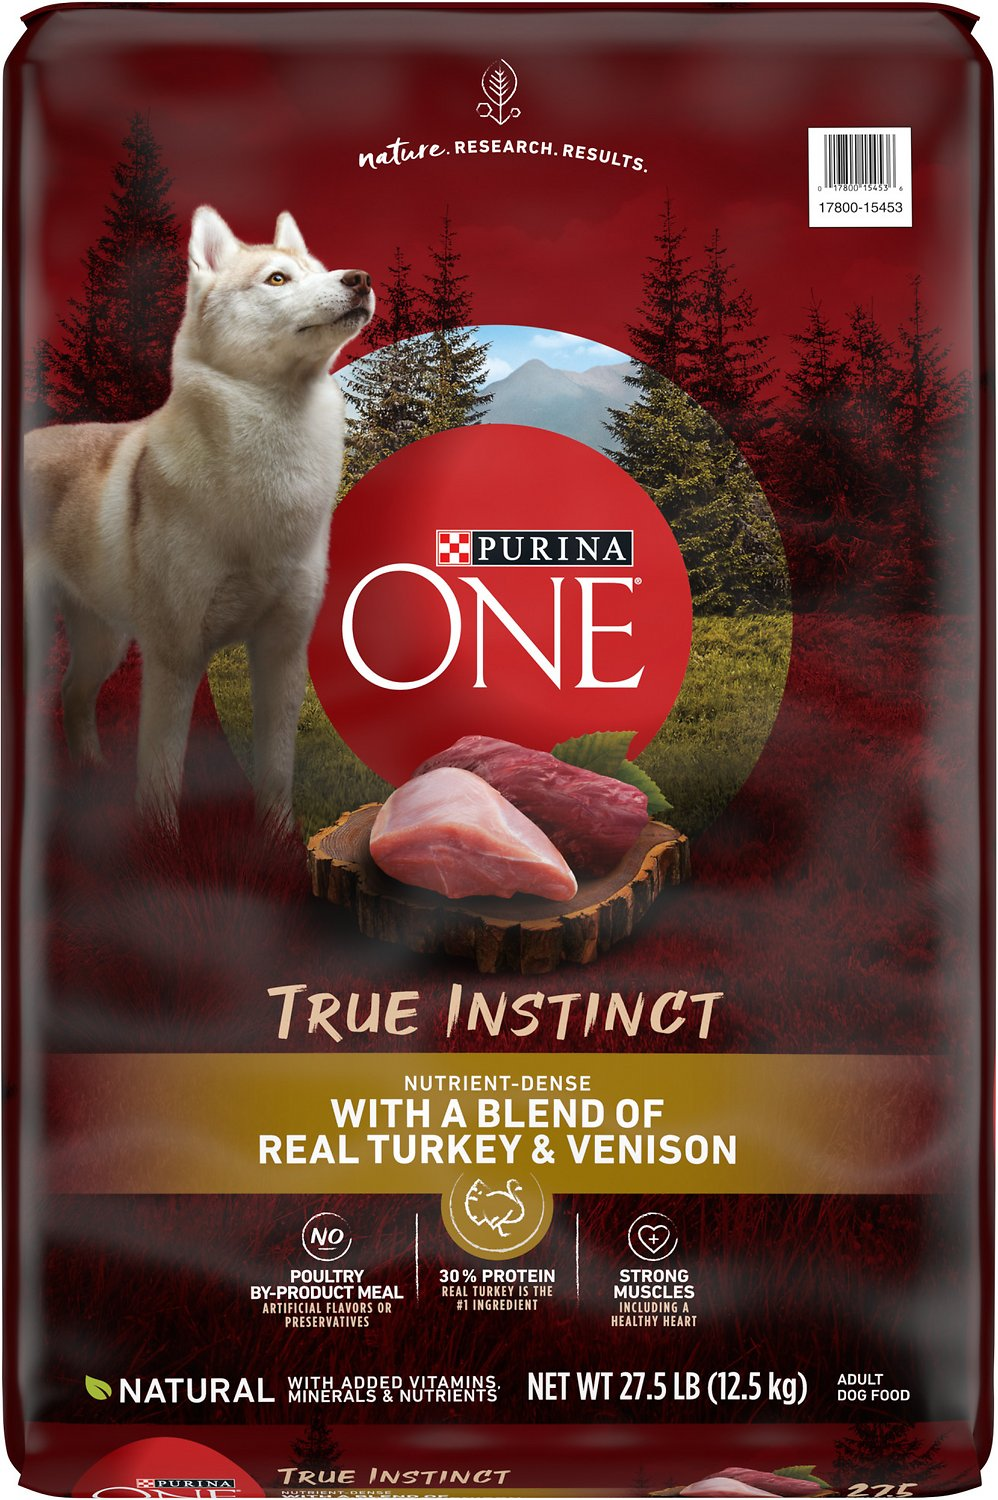 Purina One Cat Food Price